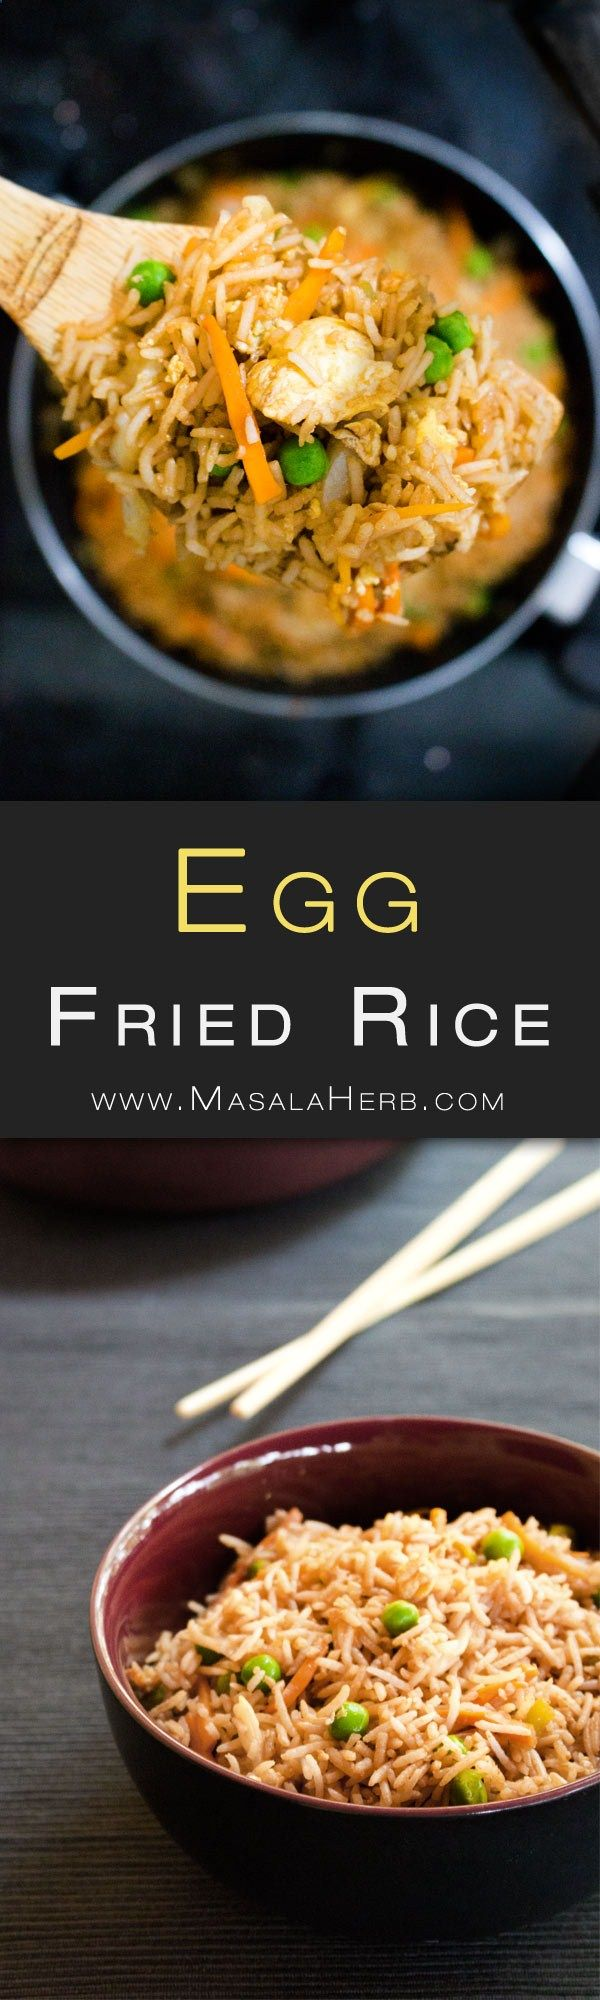 Quick  Easy Egg Fried Rice Recipe - How to make egg fried rice Indian Style [ video]. Make your own egg fried rice weeknight dinner with left over rice in less then 15 minutes. Falvorfull and comforting. www.MasalaHerb.com